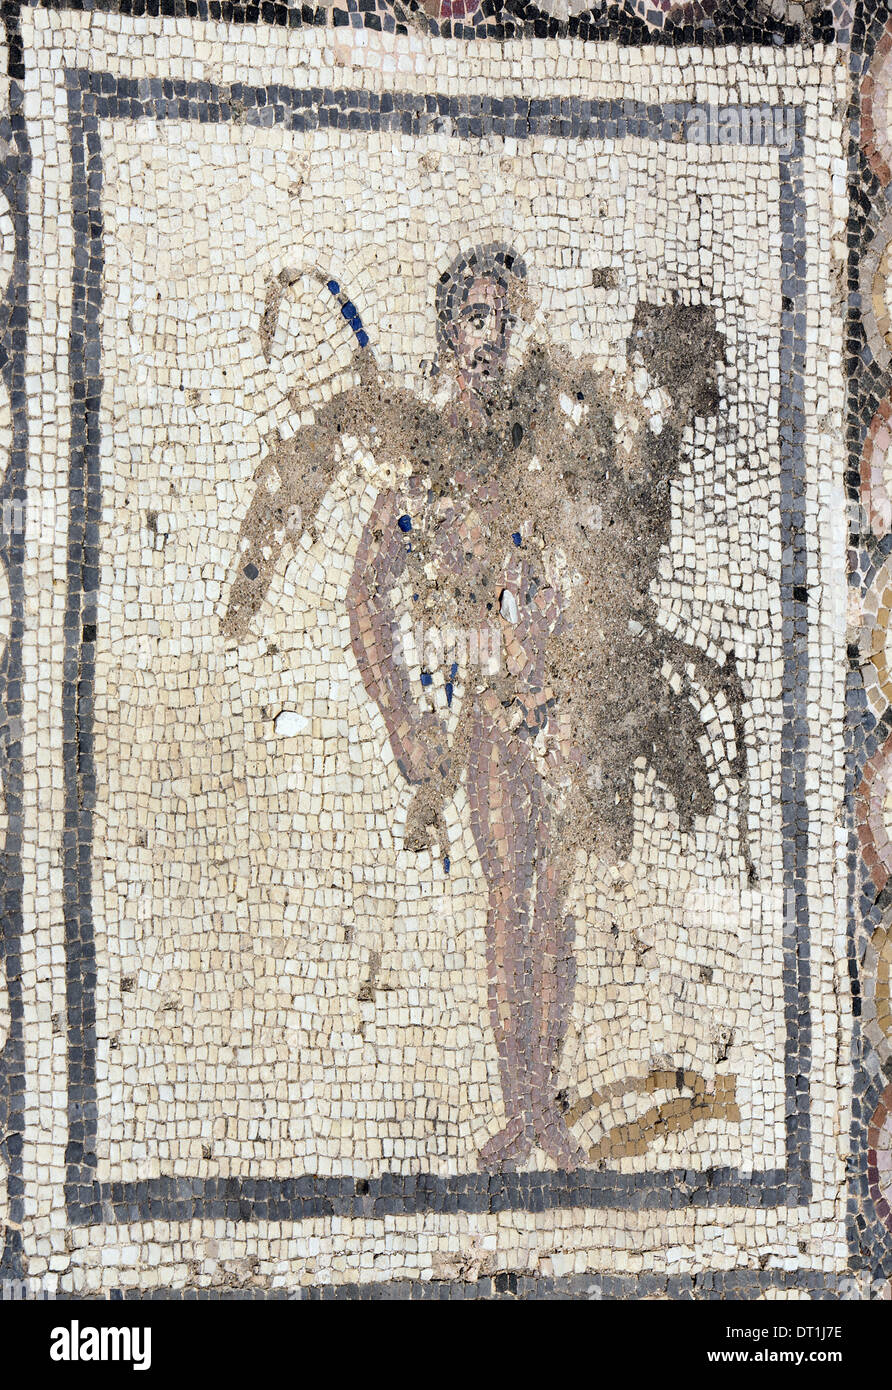 Spain. Italica. Roman city founded c. 206 BC. House of the Planetarium. Mosaic of Bacchus and Ariadne. Satyr. Andalusia. Stock Photo